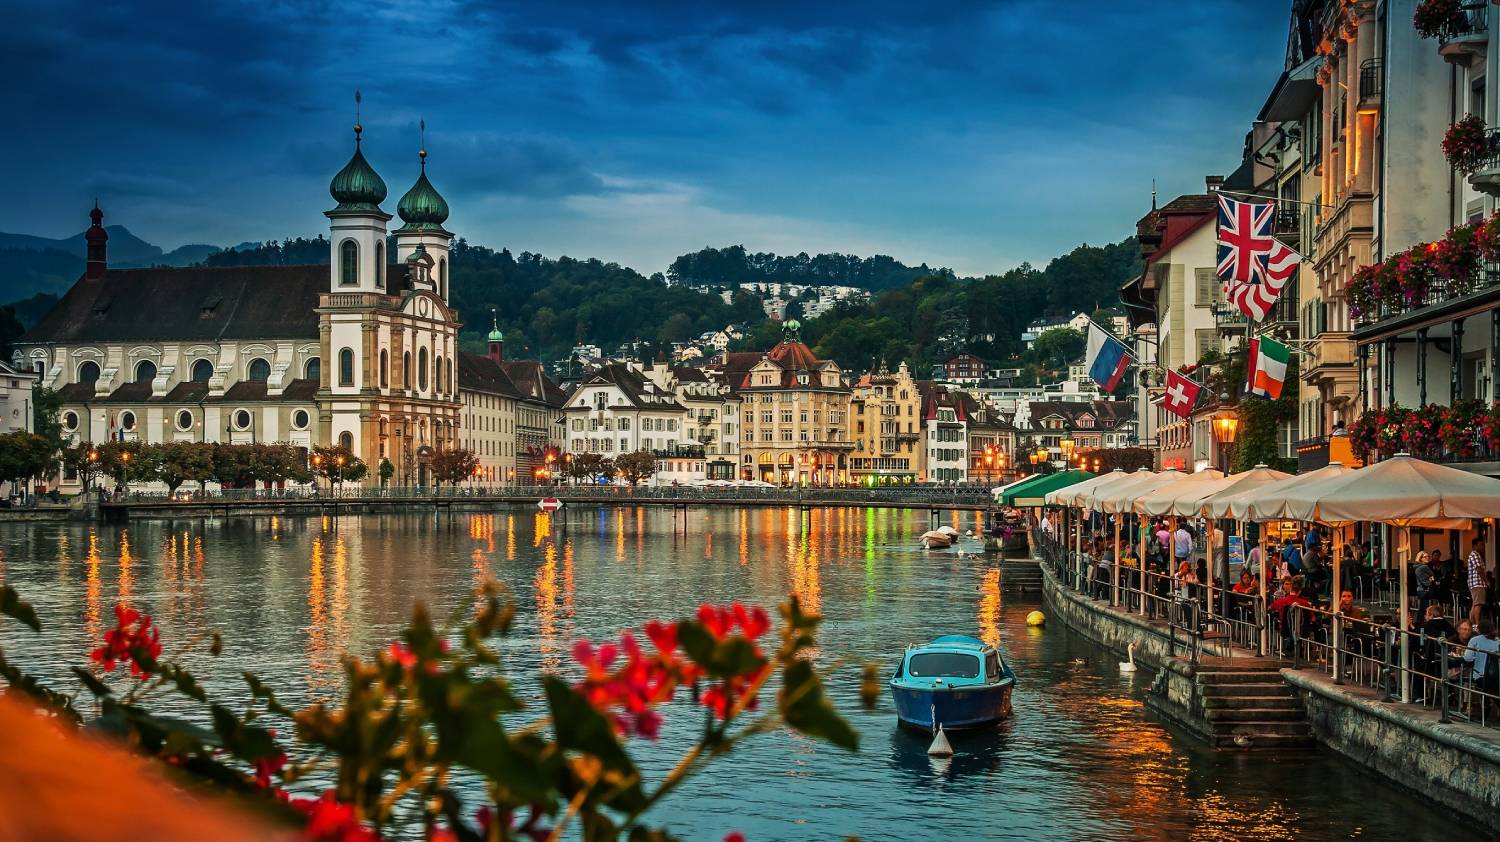 Lucerne Old Town - Things To Do In Lucerne